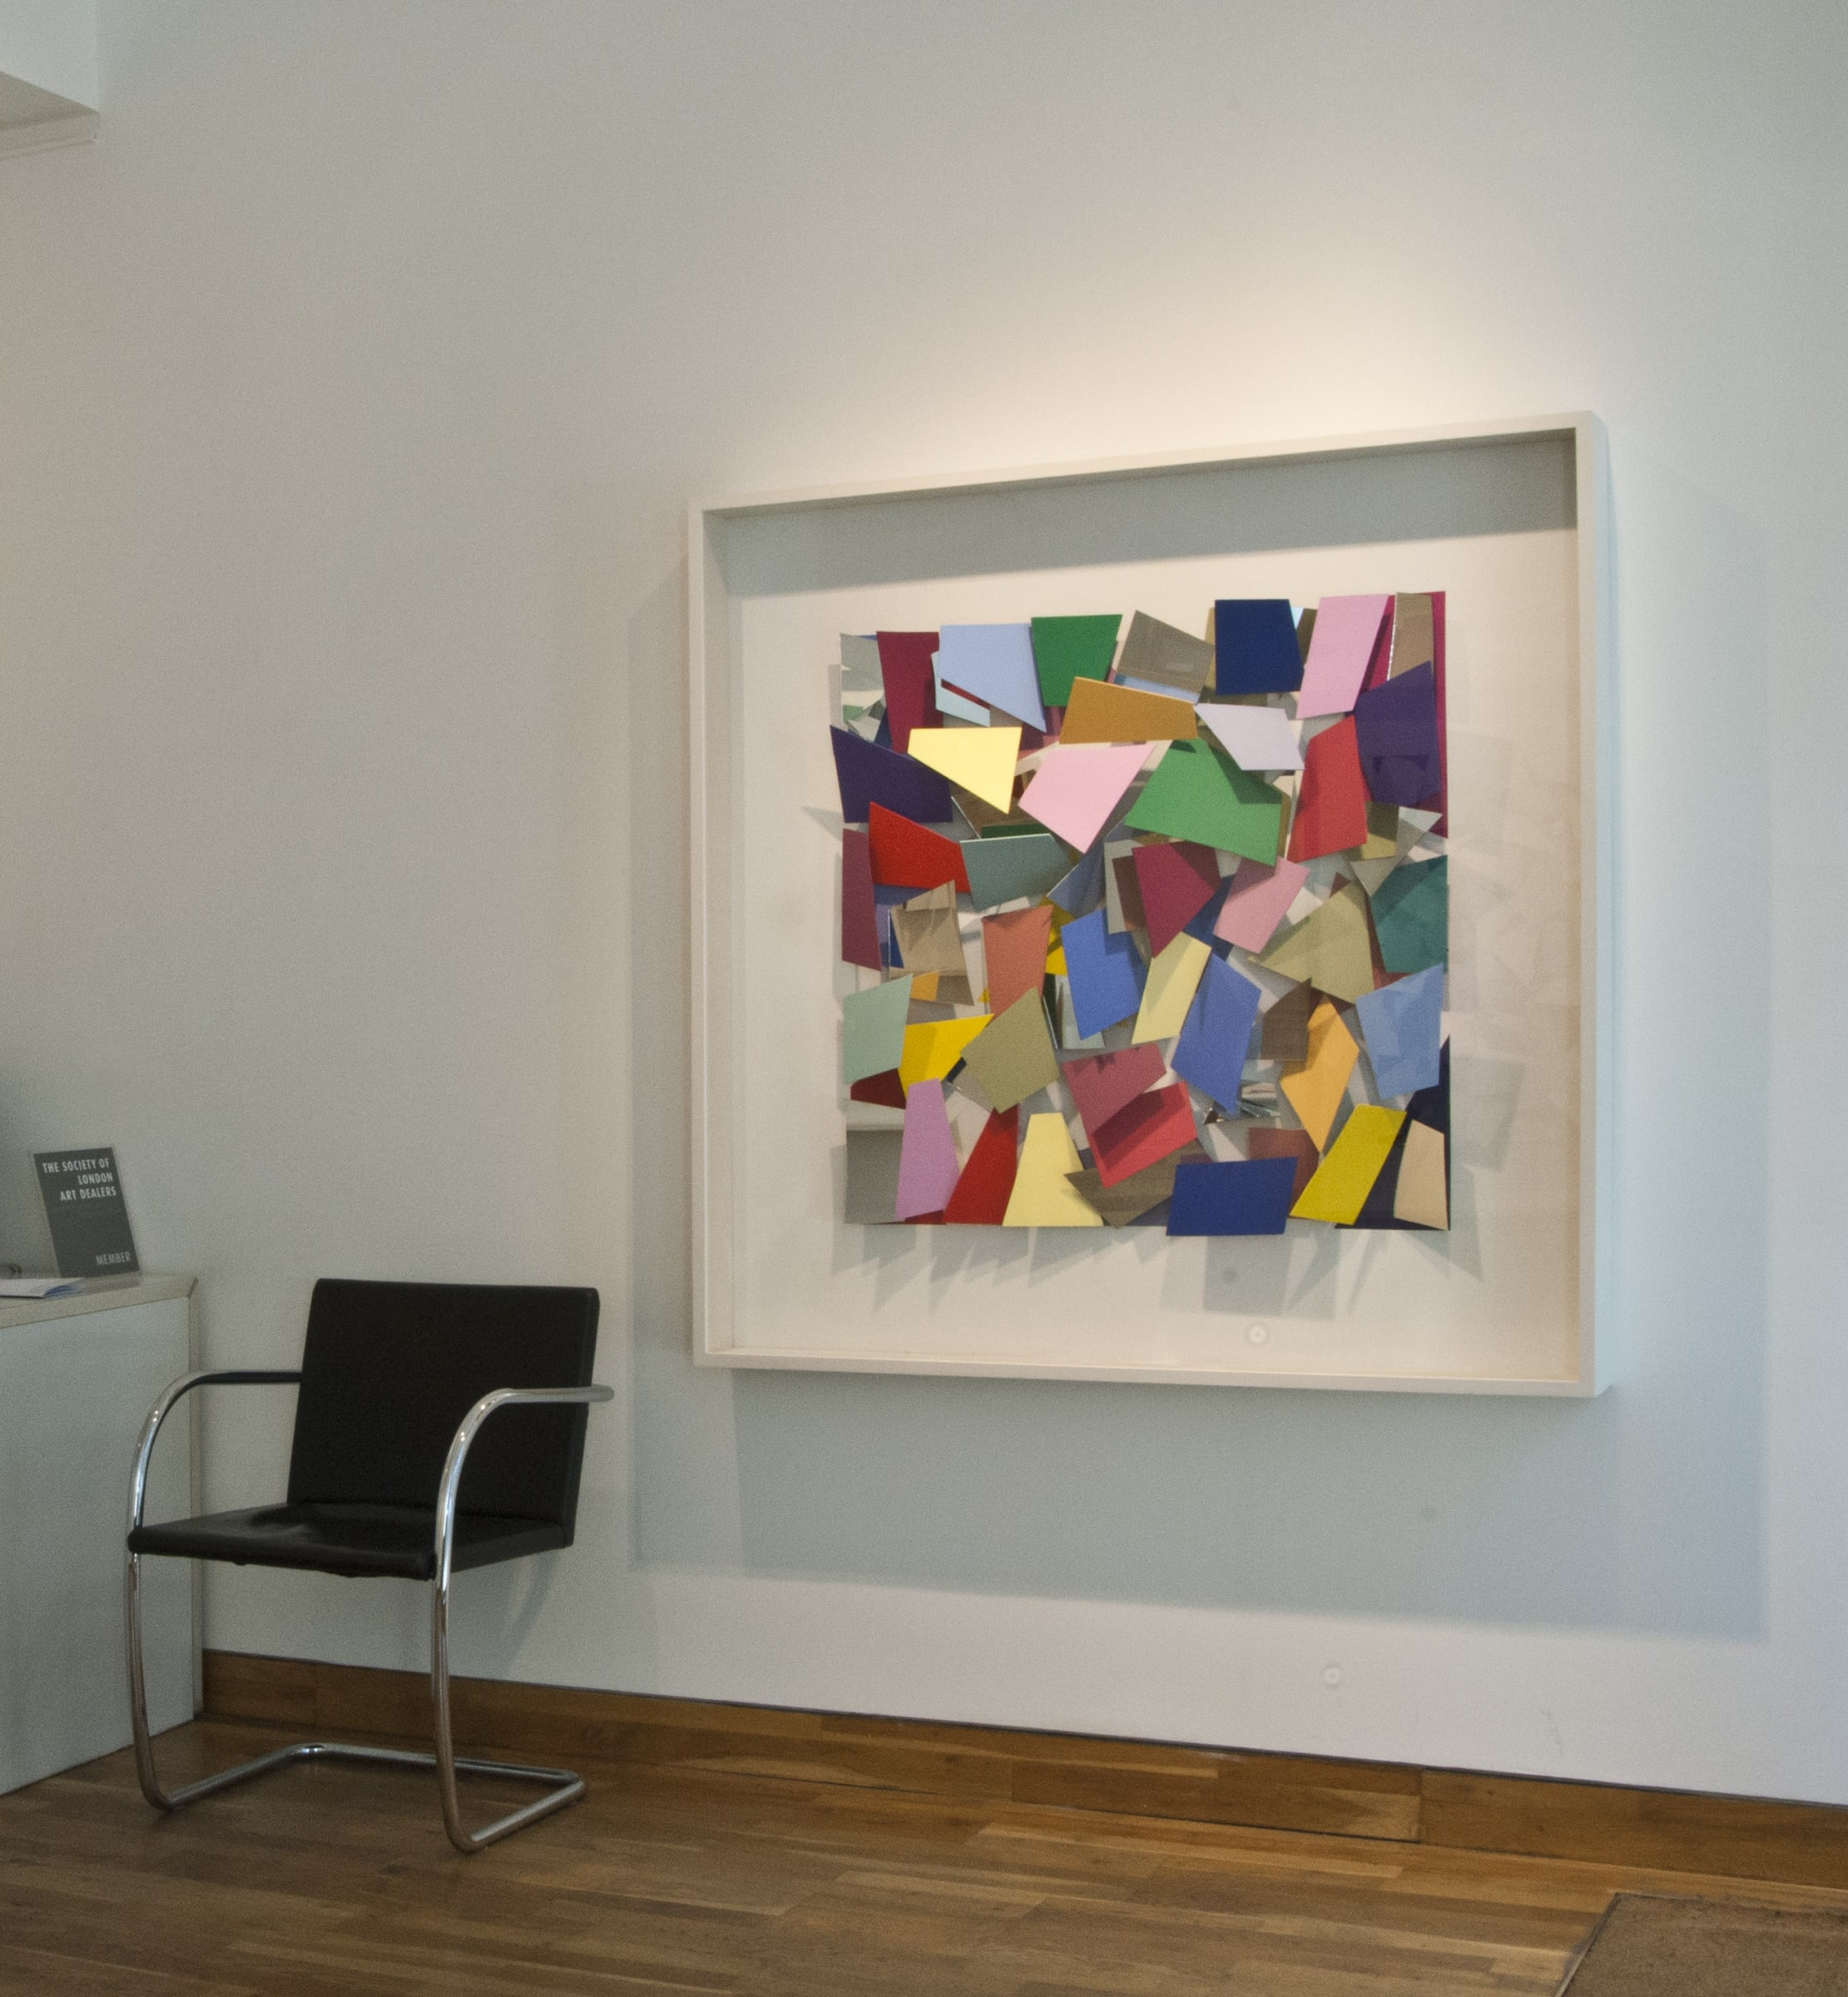 """<span class=""""link fancybox-details-link""""><a href=""""/exhibitions/75/works/image_standalone220/"""">View Detail Page</a></span><p>CHRISTIAN MEGERT   A NEW SPACE   11 JAN - 24 FEB 2012  Installation View</p>"""